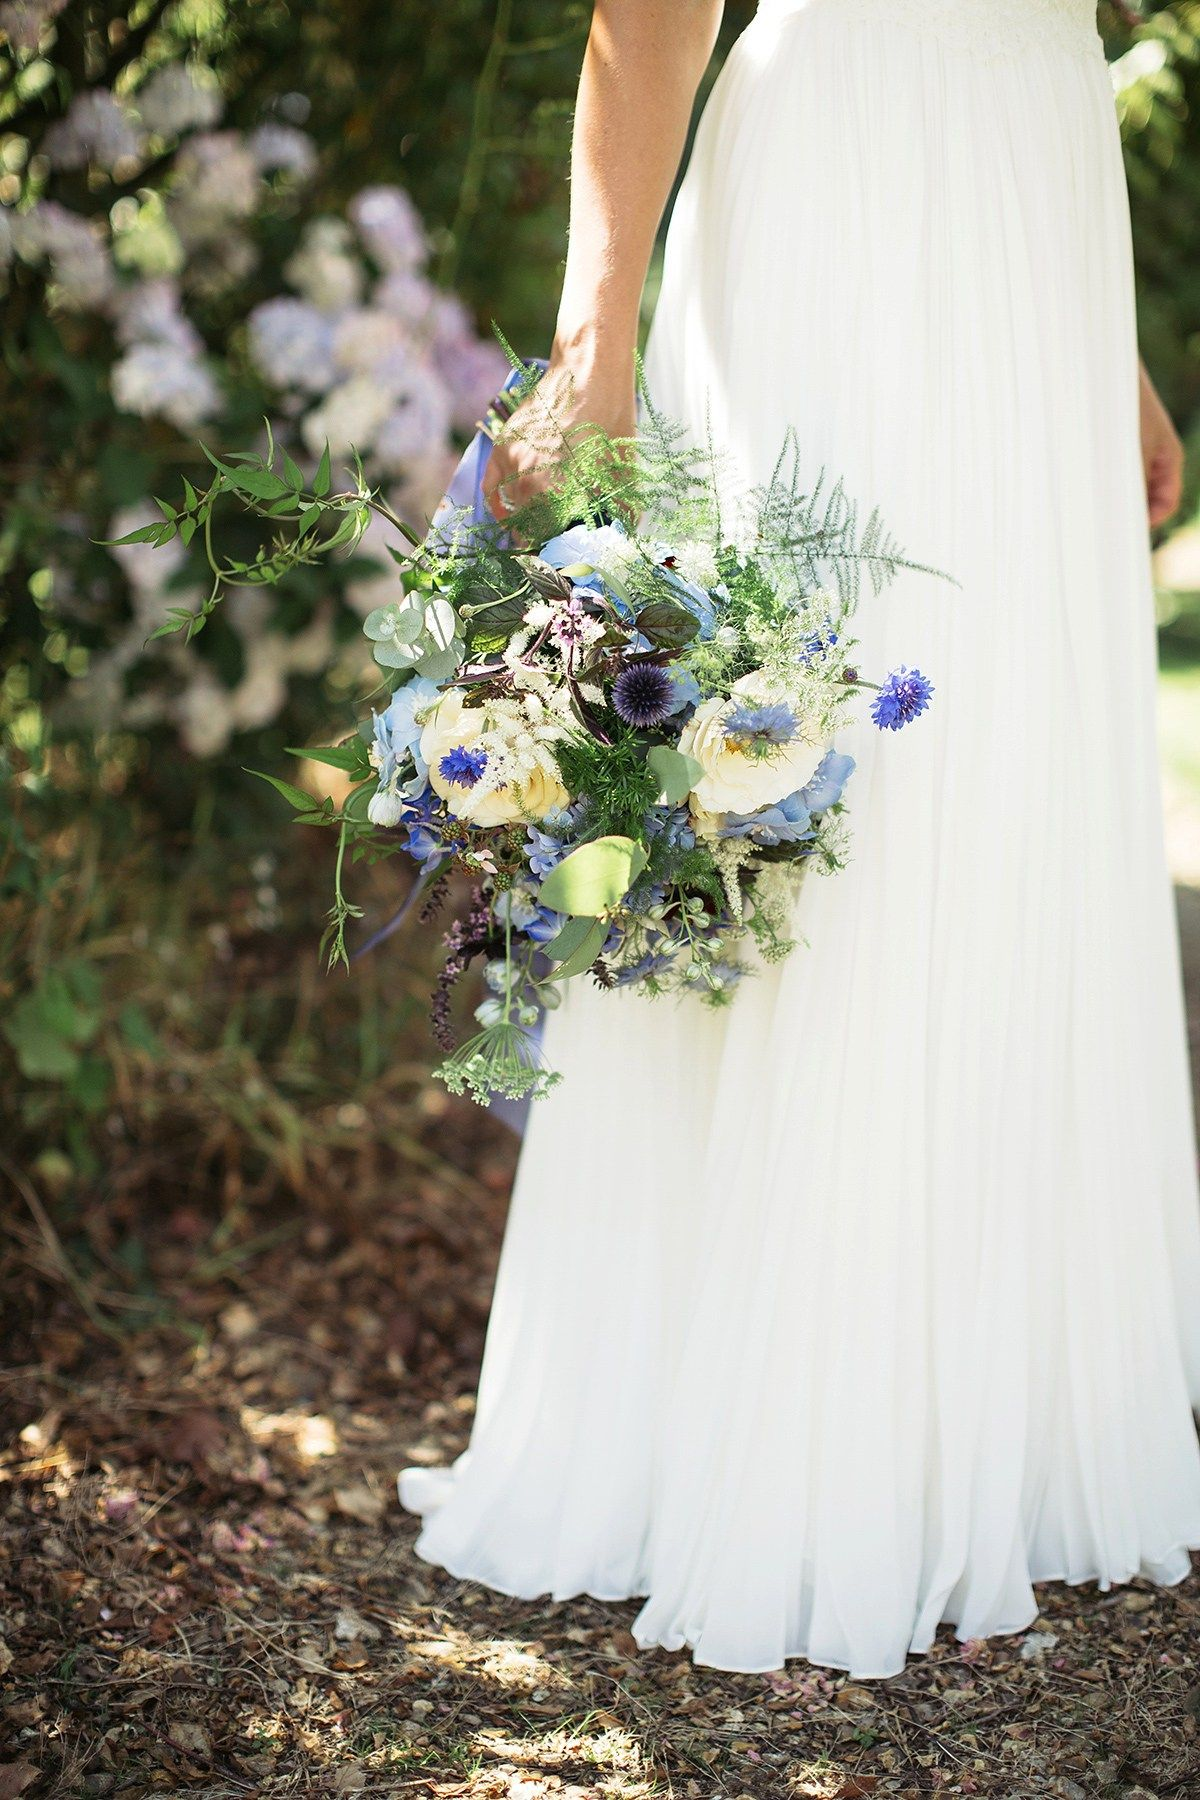 A country casual and charming orchard wedding in shades of blue and gold